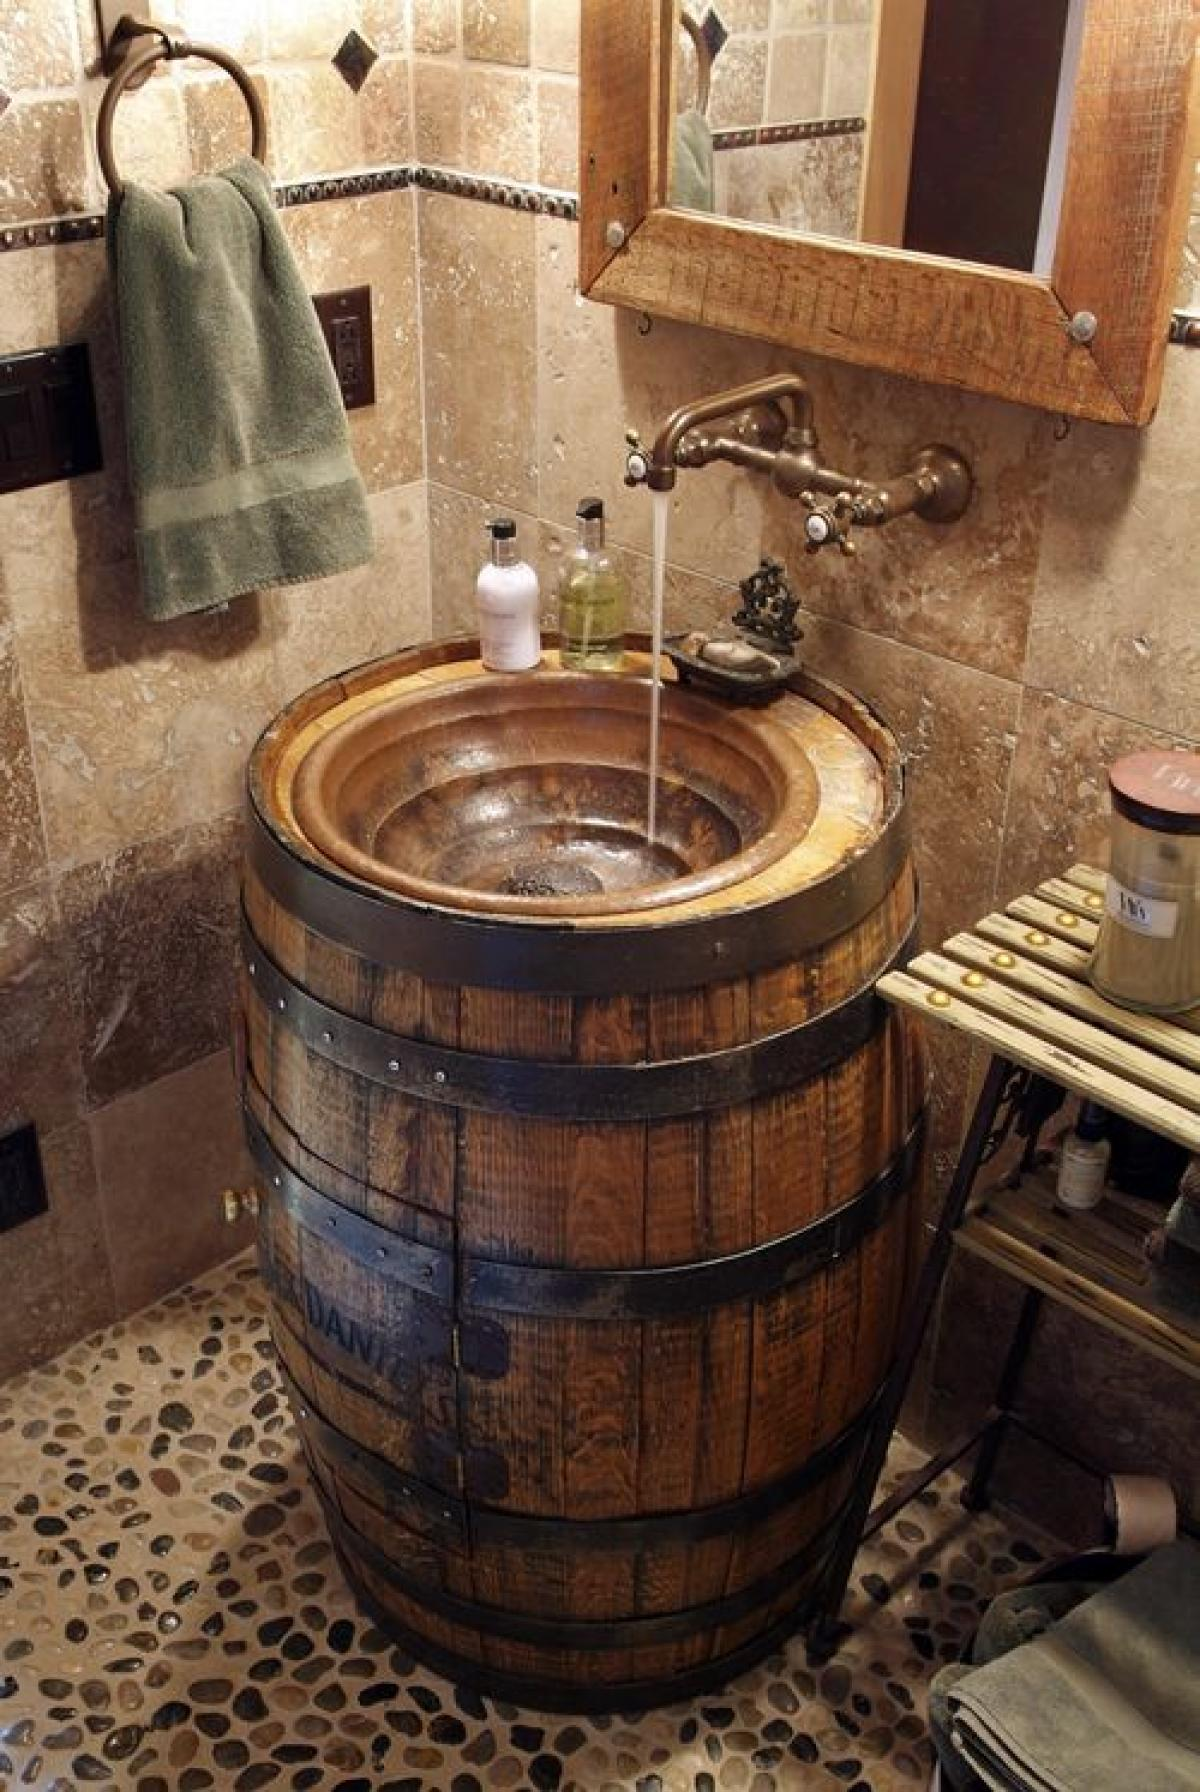 12. Converted Whiskey Barrel Sink